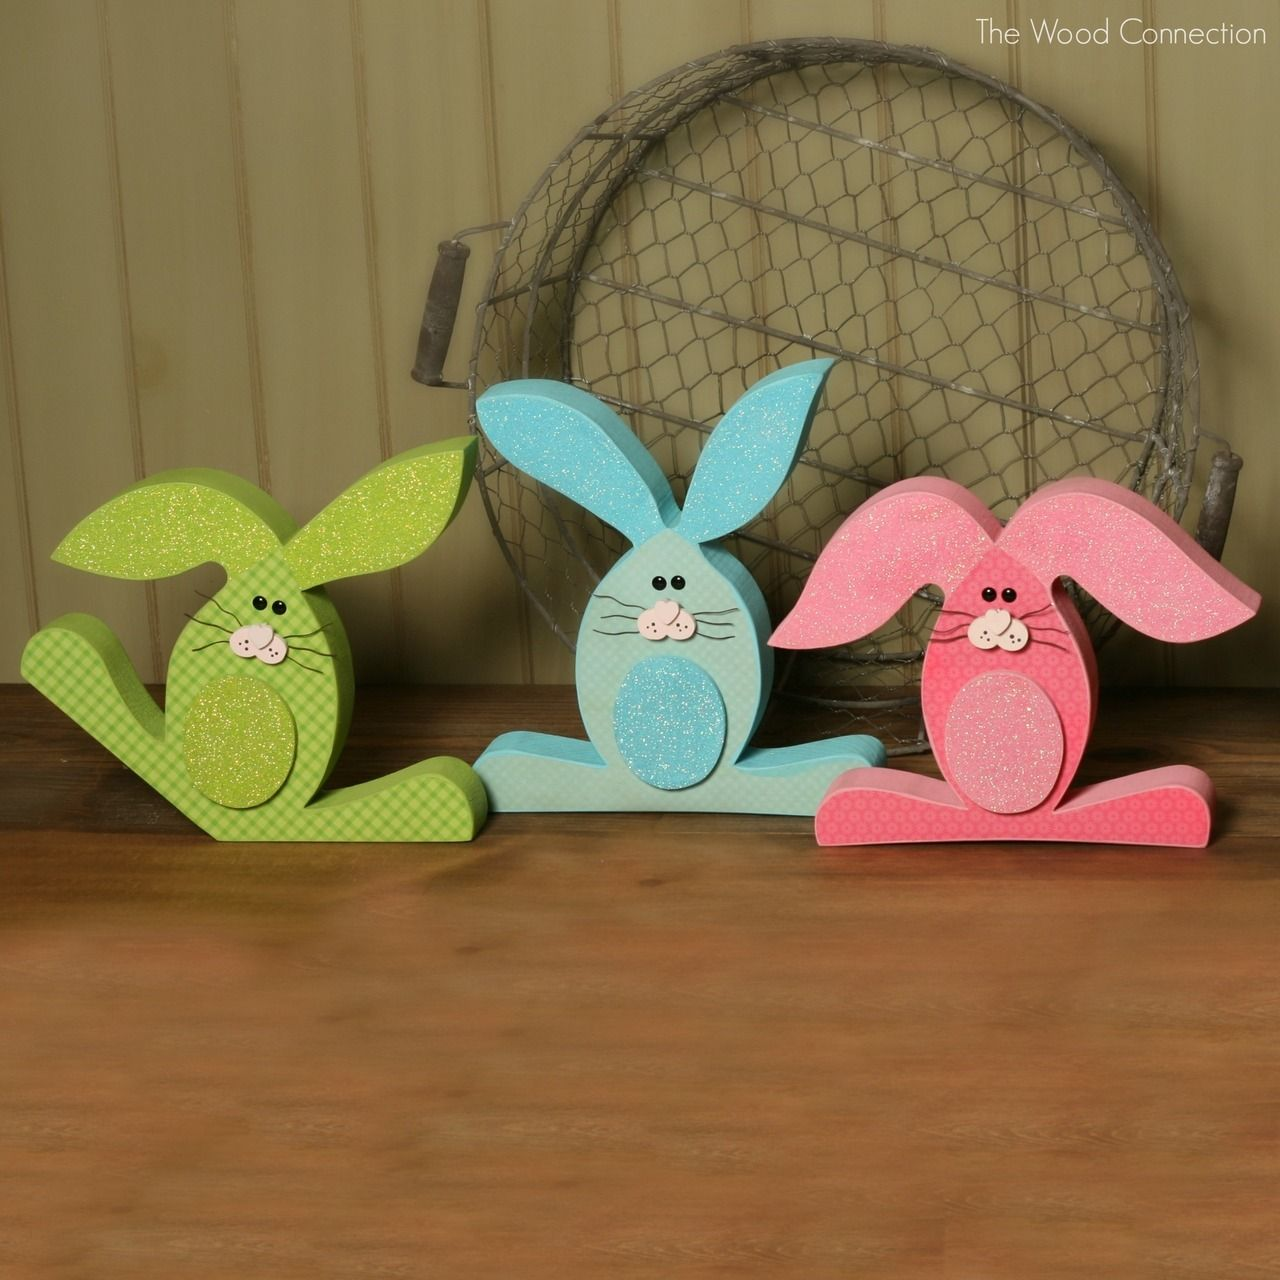 Featured 5 Spring Projects: The Wood Connection - Bunny Trio, $5.95